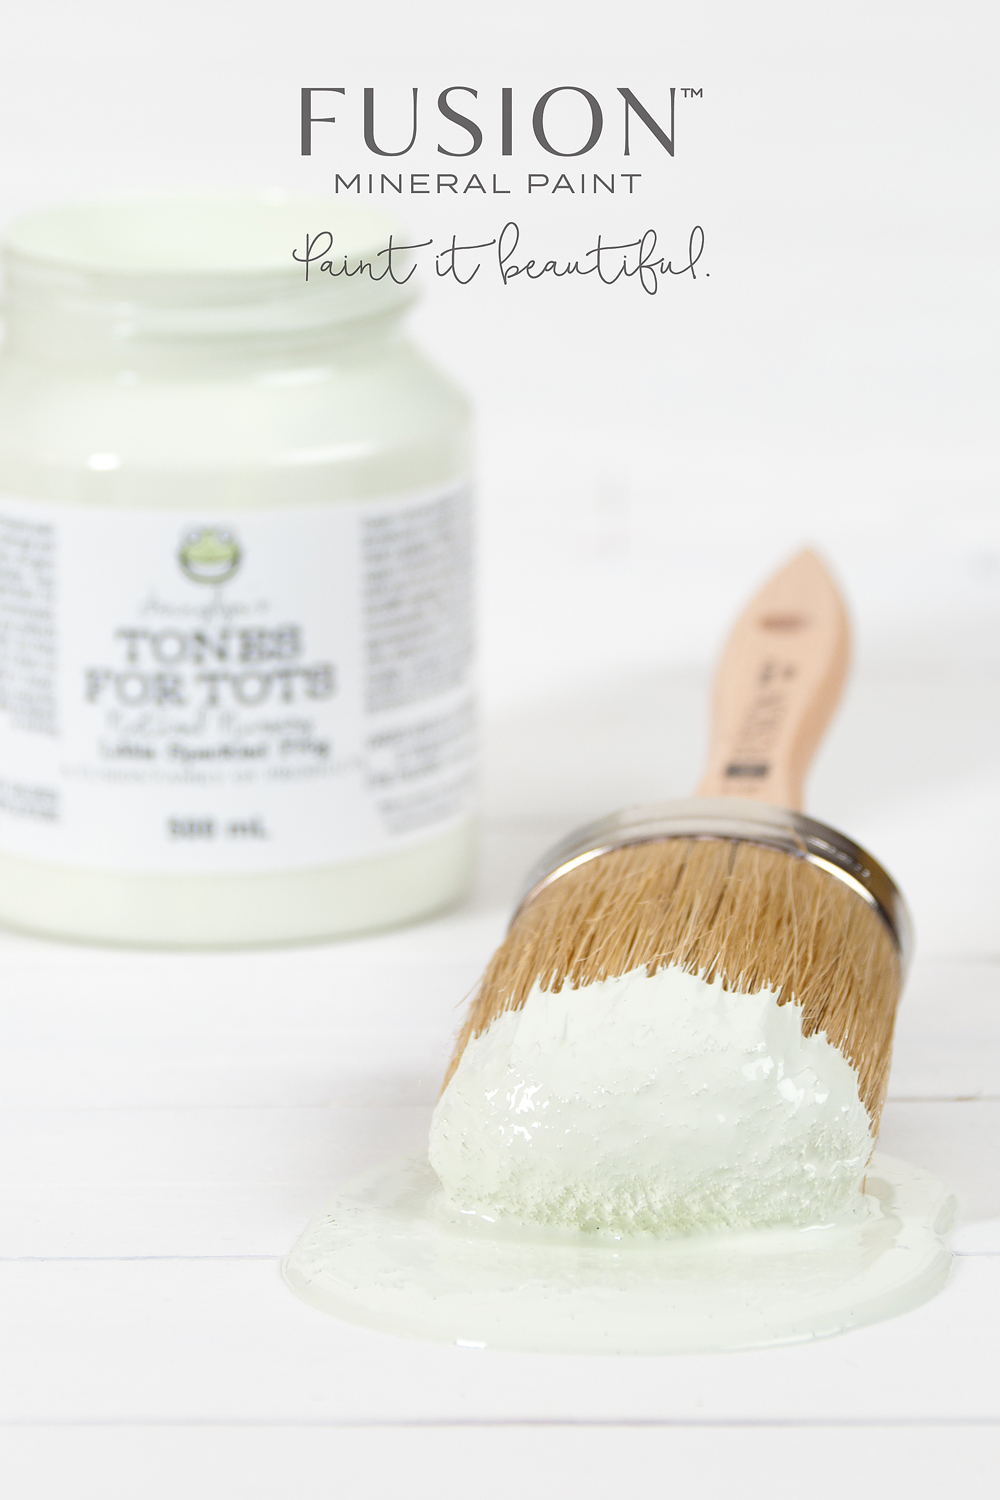 Jennylyn's Tones for Tots by Fusion Mineral Paint (Styling and photography:My Painted Door)